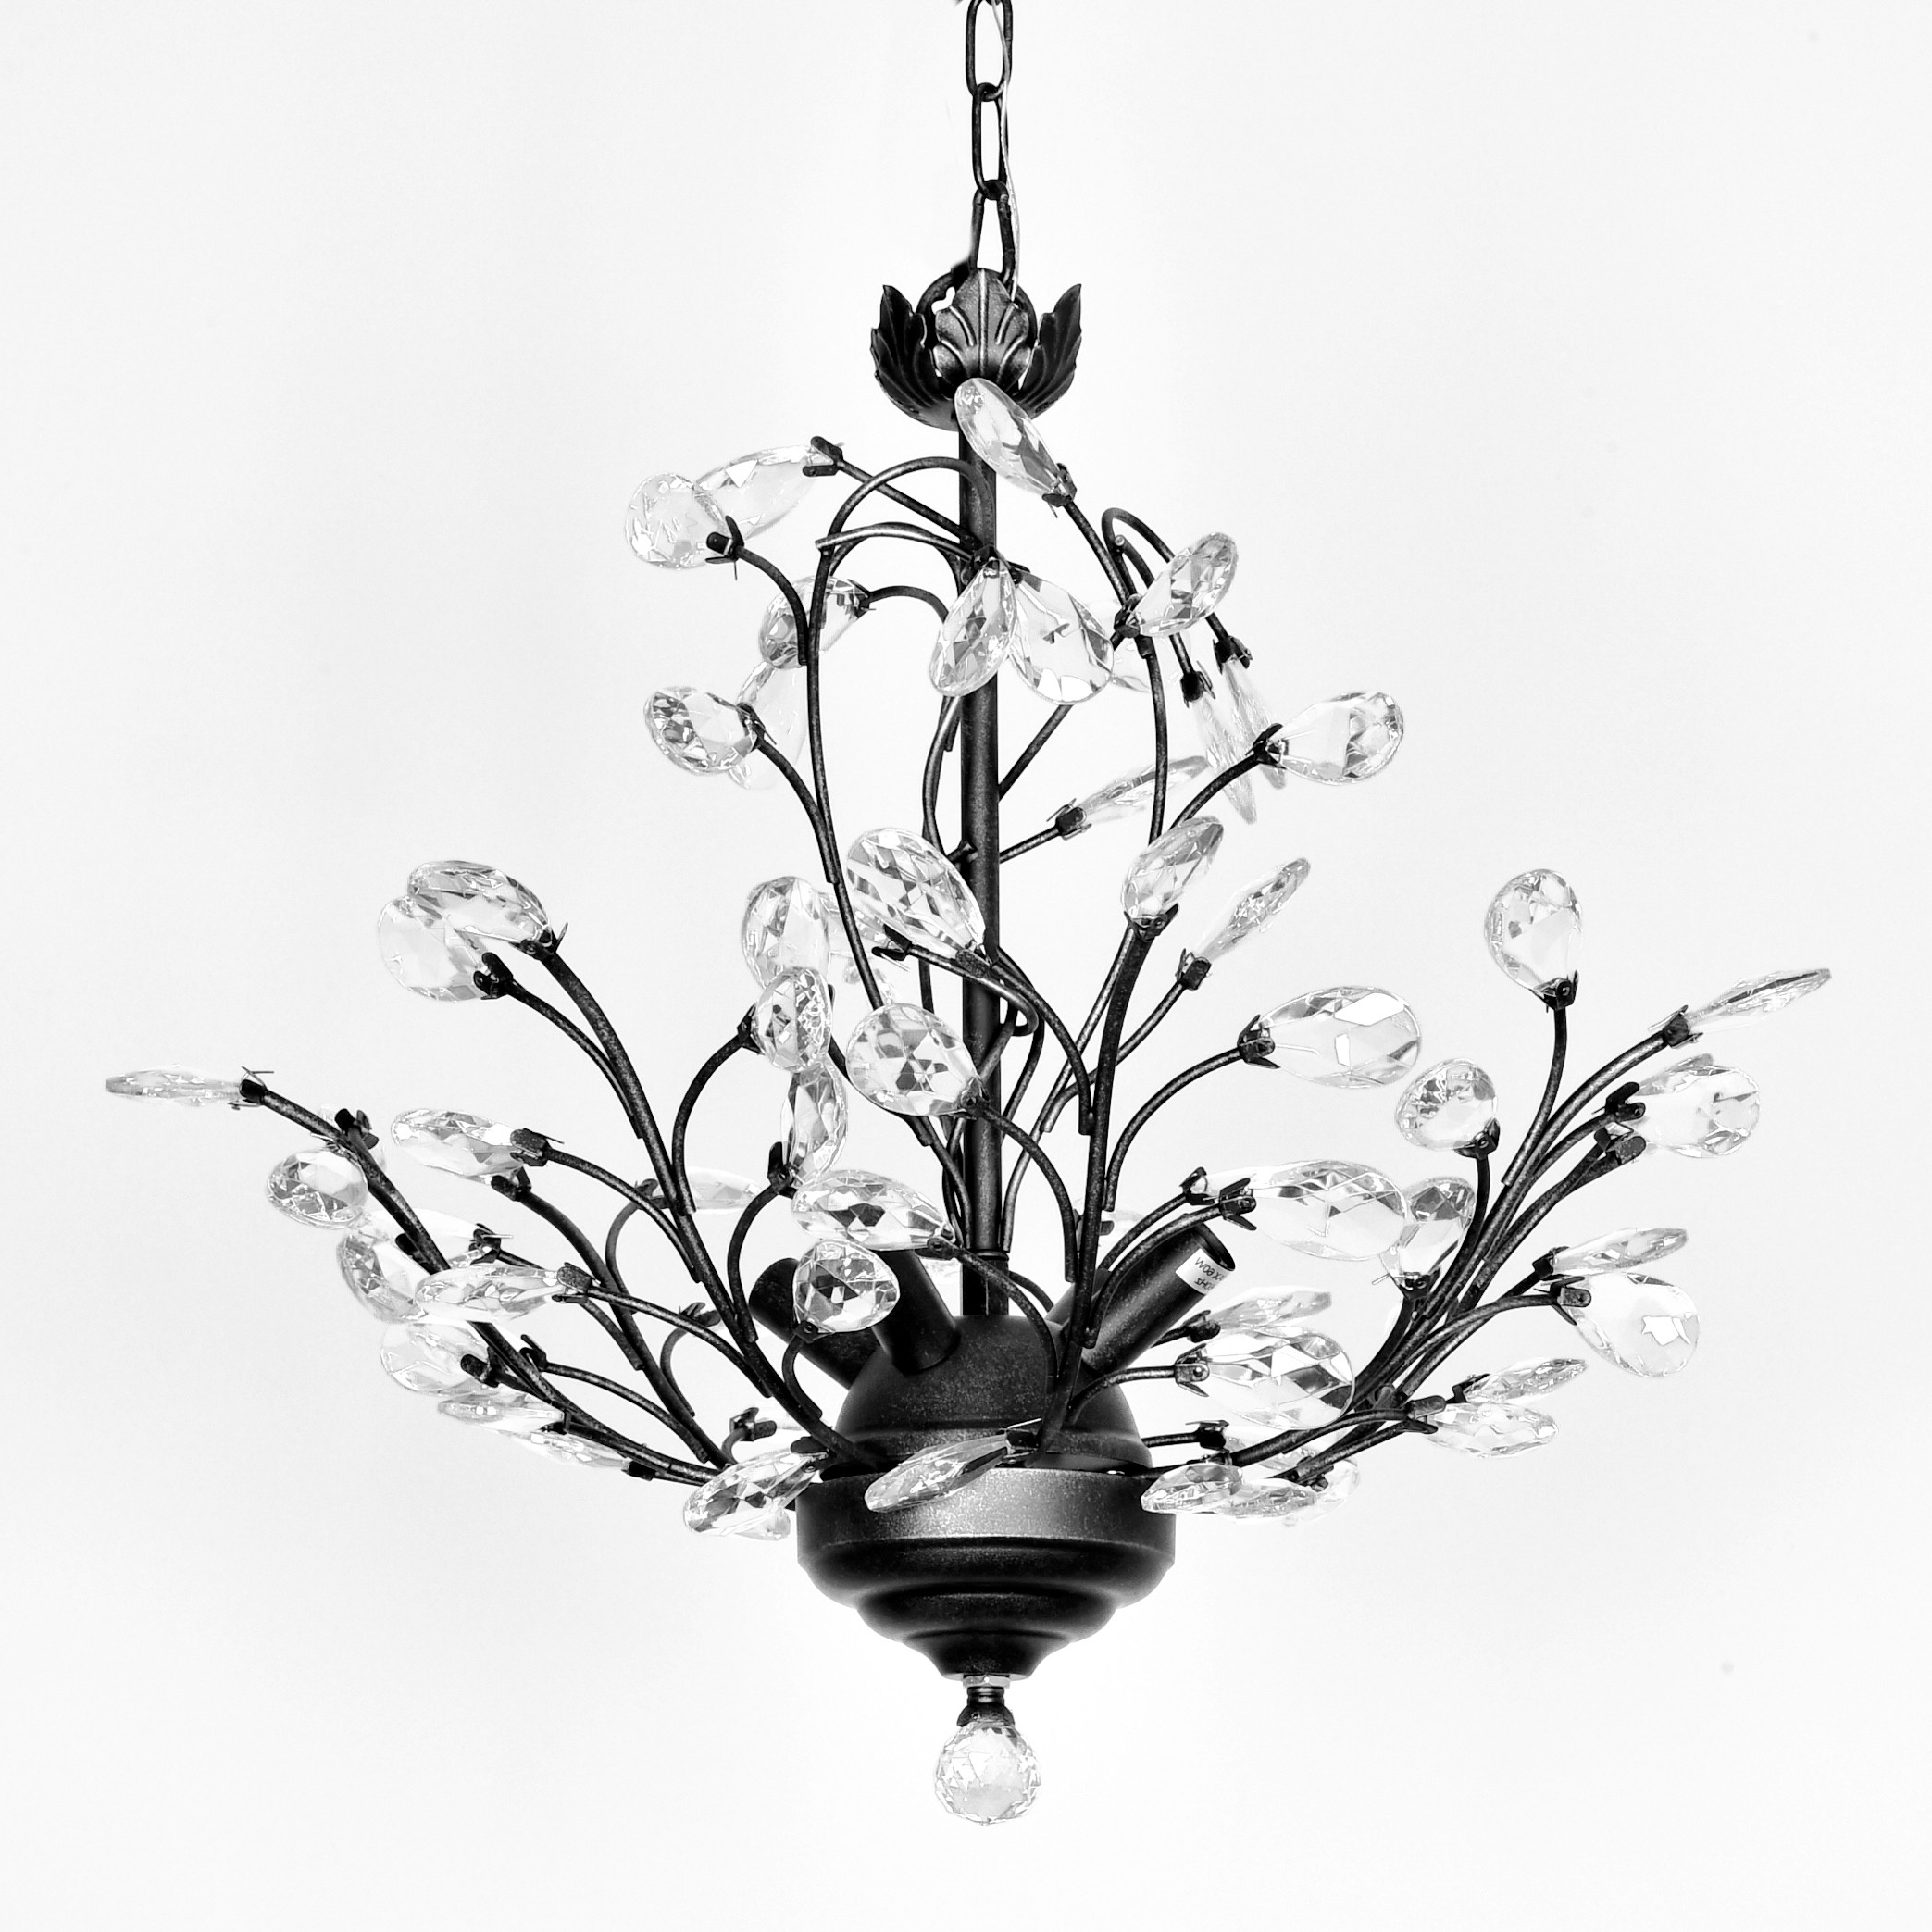 Wayfair Chandeliers Inside 2018 Chandelier: Astounding Wayfair Chandeliers Chandelier Pokemon (View 17 of 20)